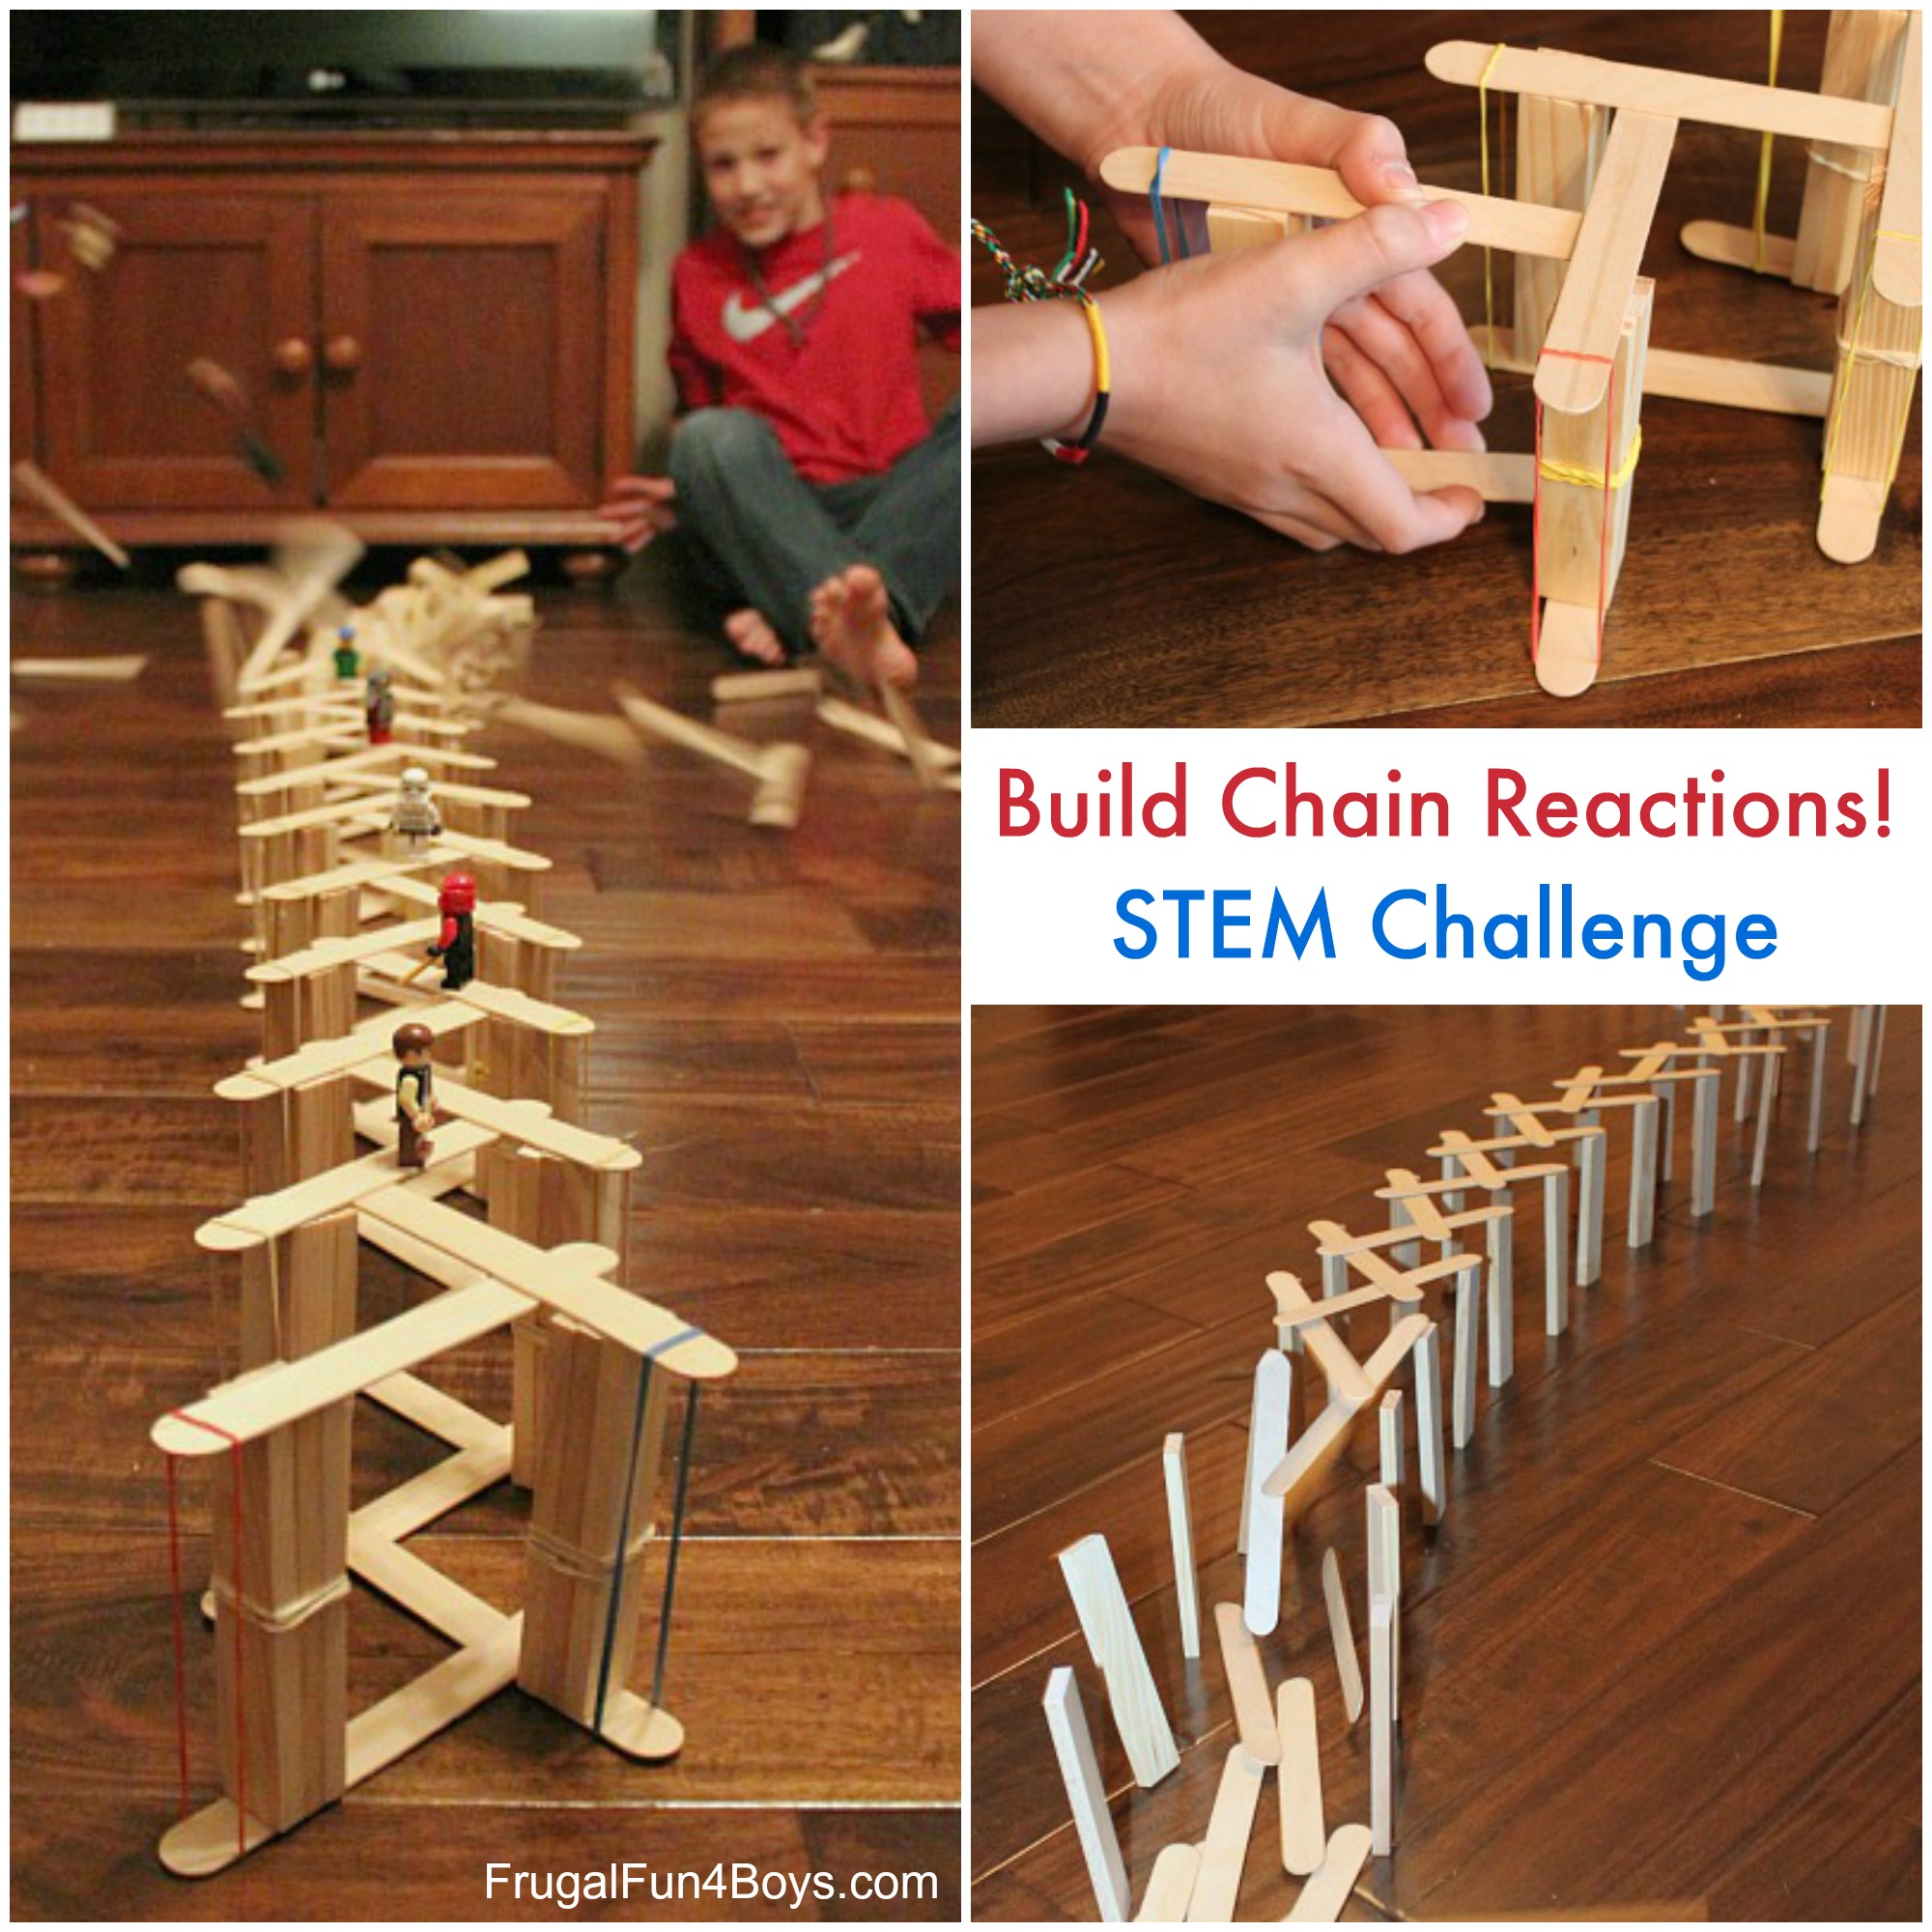 STEM Challenge:  Build Chain Reactions with Craft Sticks